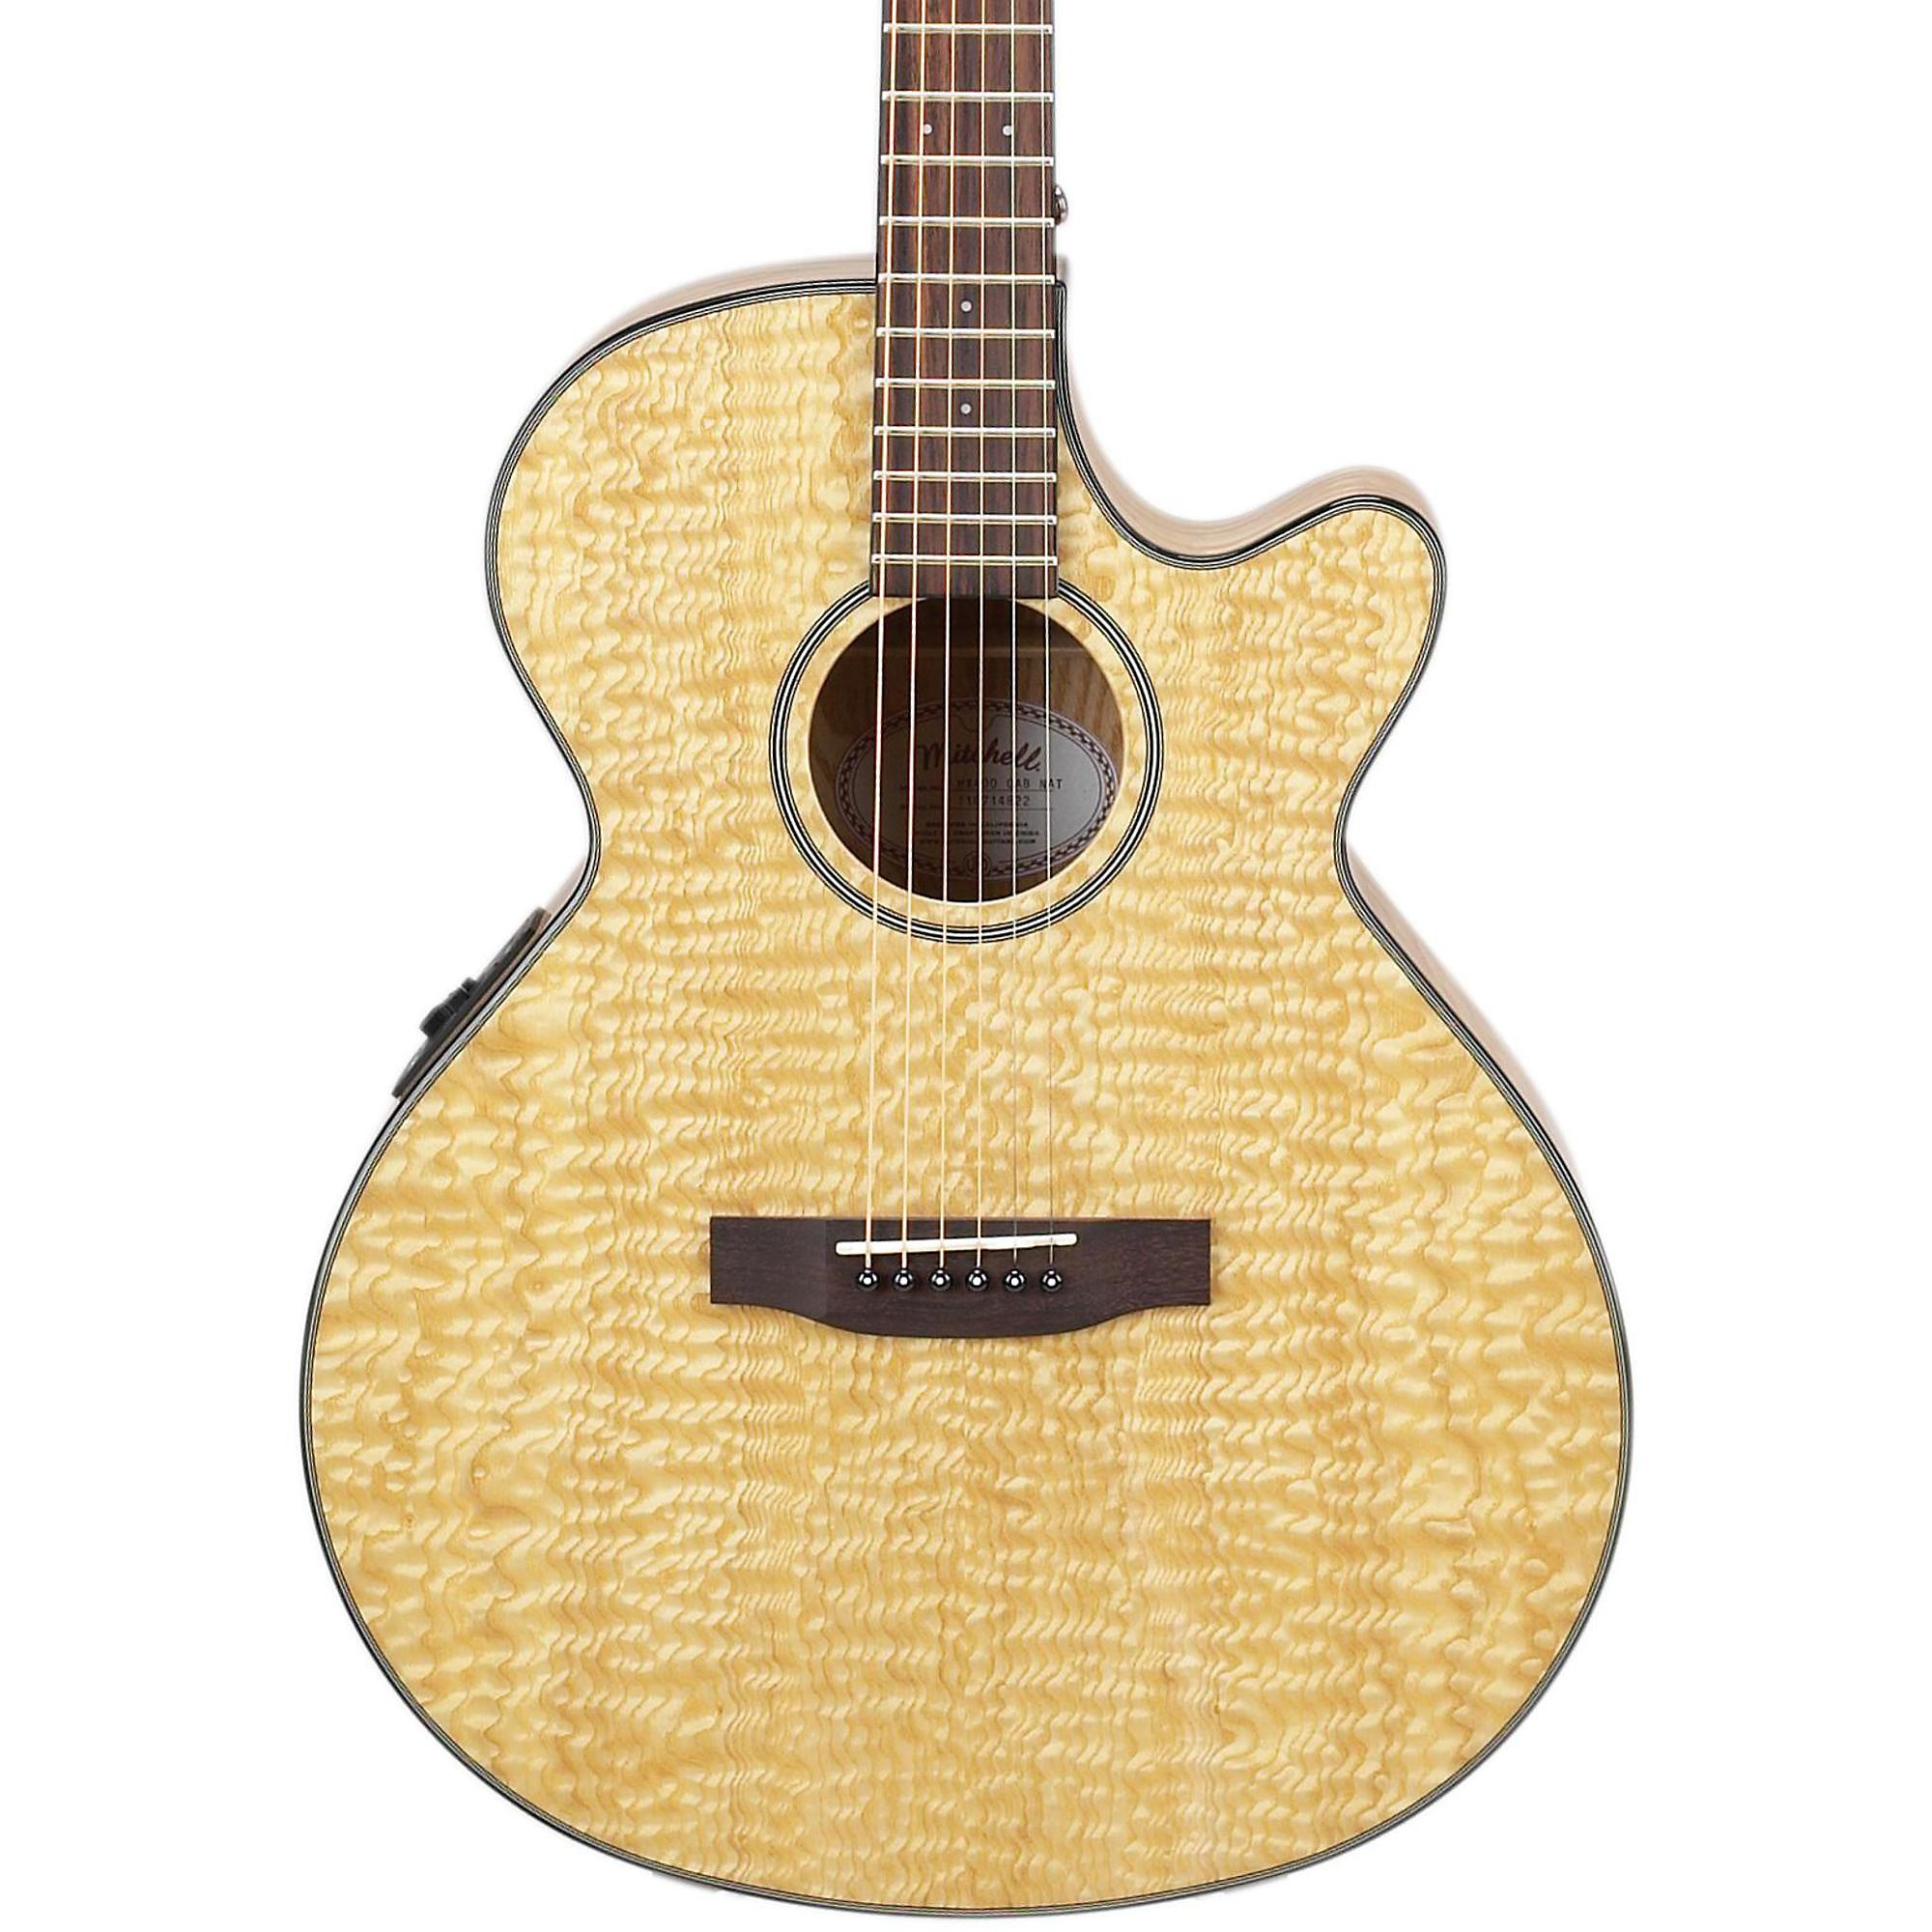 MX400 Exotic Wood Acoustic-Electric Guitar